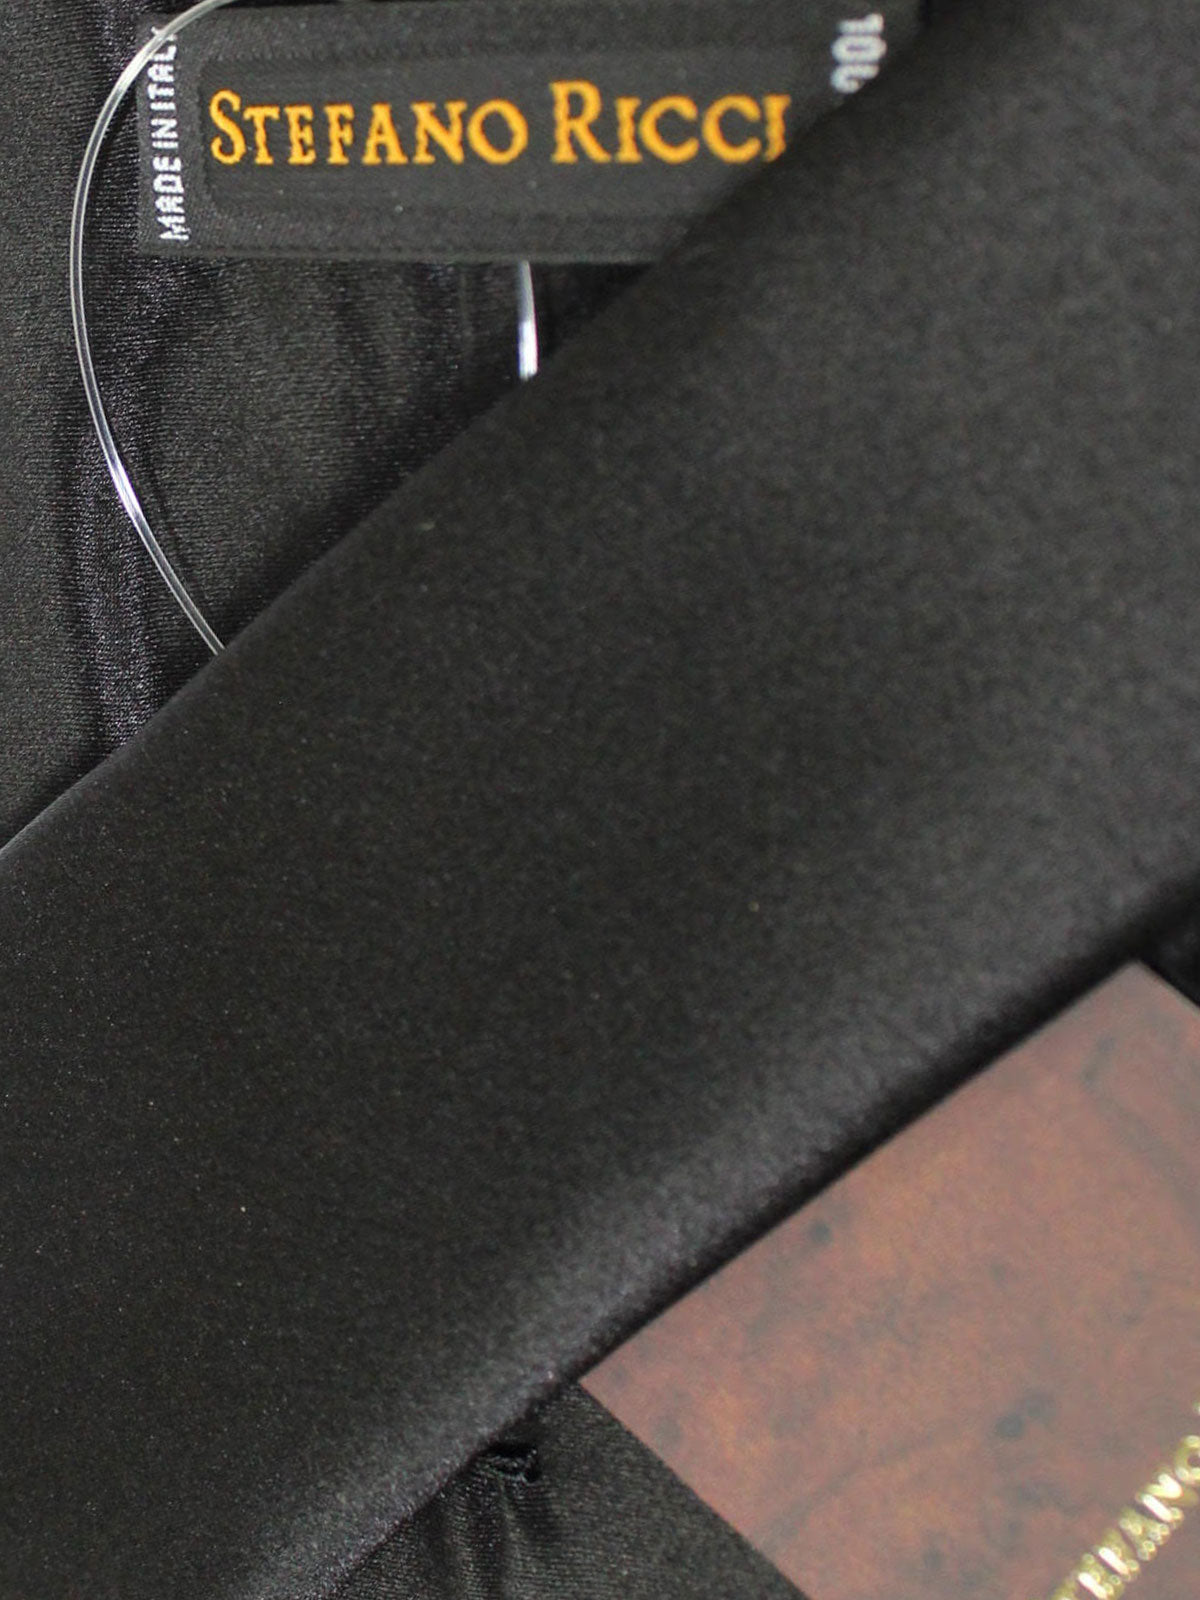 Stefano Ricci Pleated Silk Tie Solid Black Design